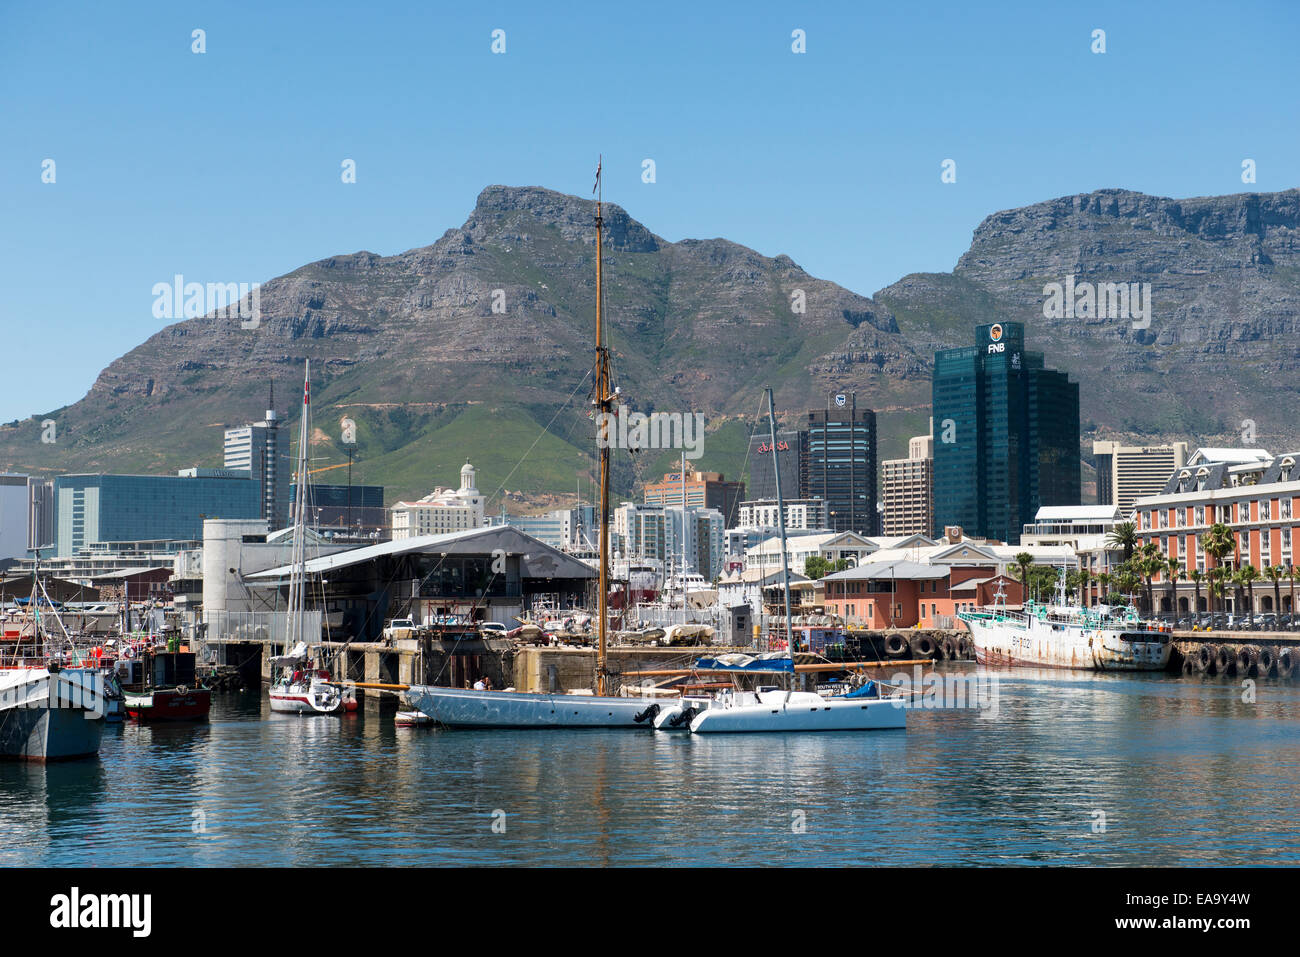 Skyscrapers in the central business district and old harbor, view from Albert Mall, Cape Town, South Africa - Stock Image